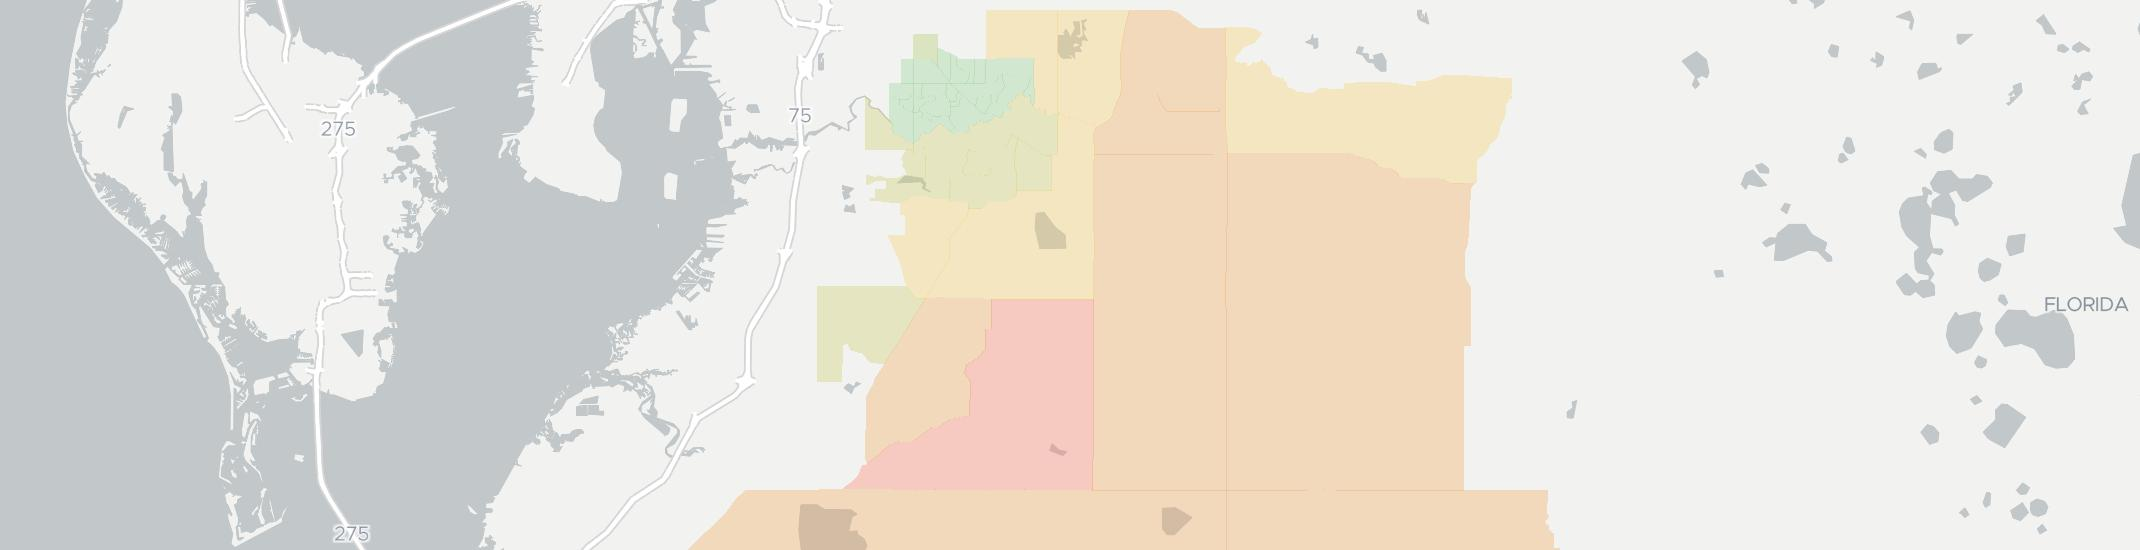 Lithia Internet Competition Map. Click for interactive map.